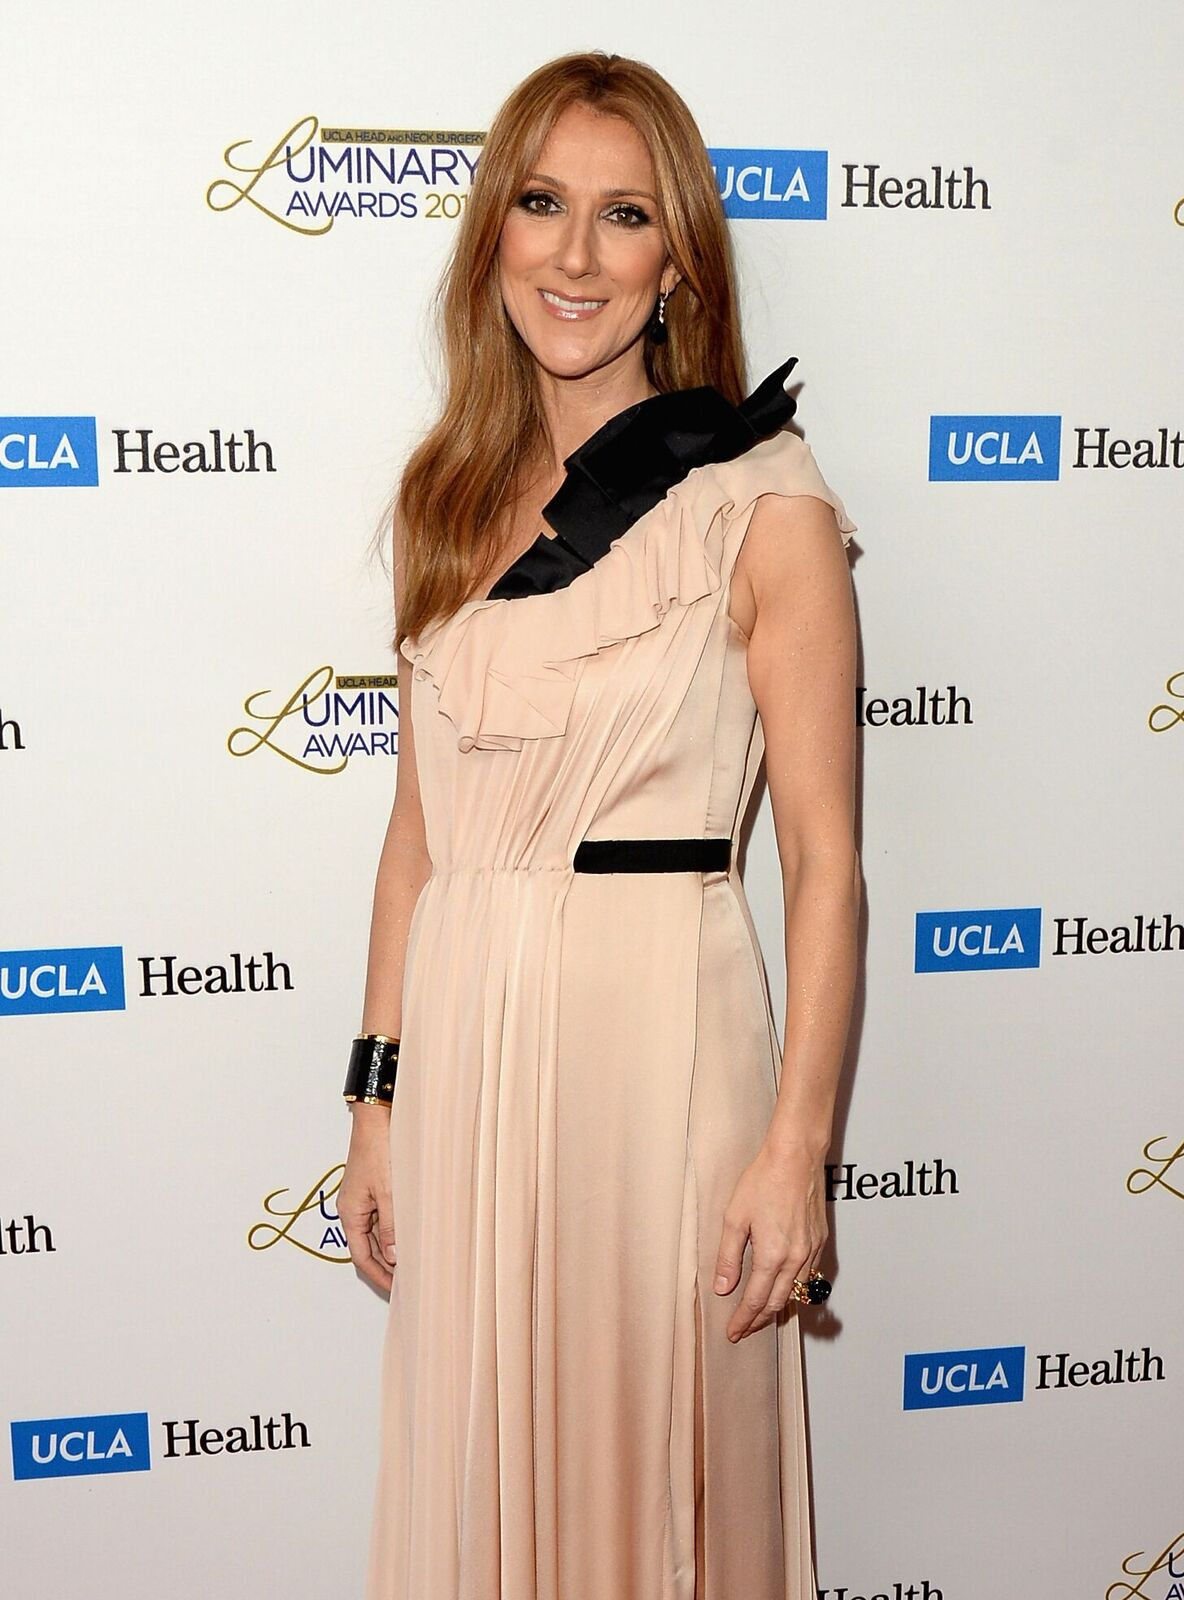 La musicienne Celine Dion assiste aux prix du luminaire de chirurgie de la tête et du cou à l'UCLA au Beverly Wilshire Four Seasons Hotel le 22 janvier 2014 à Beverly Hills, Californie | Photo: Getty Images